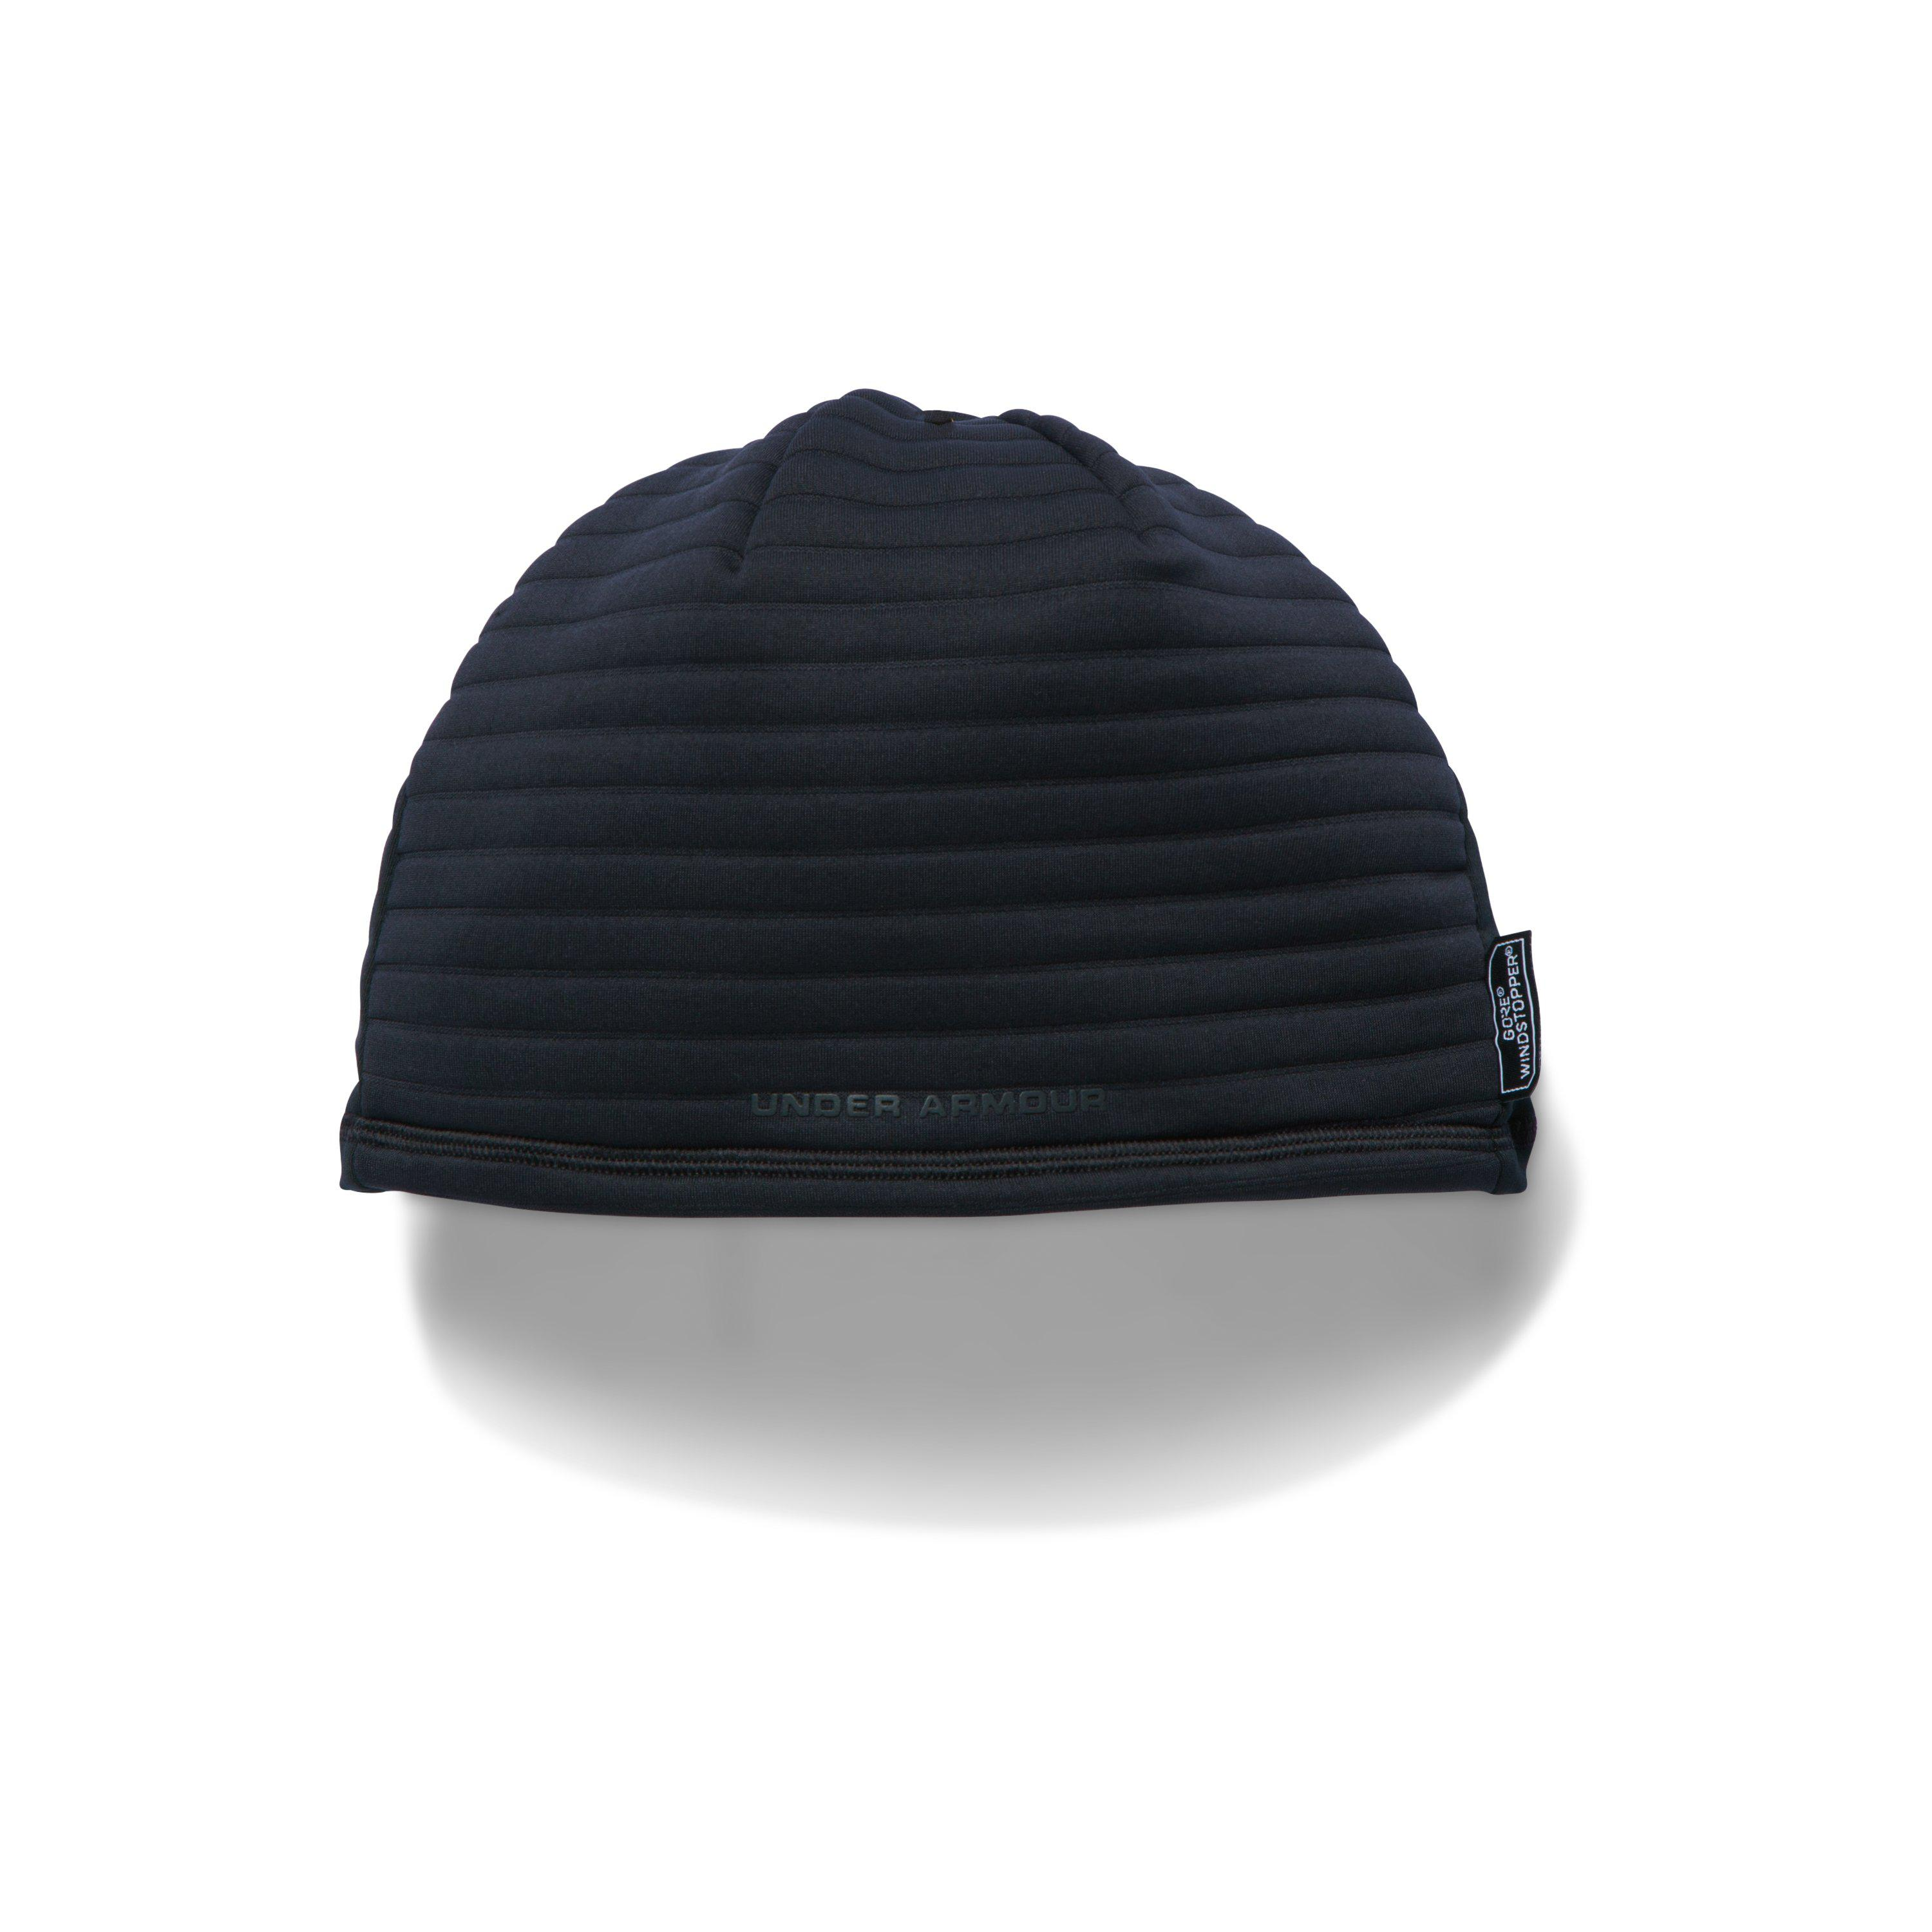 ... amazing selection 714d6 0fc83 Under Armour Mens Ua No Breaks Gore®  Windstopper® Beanie in ... 050d95a6b96d